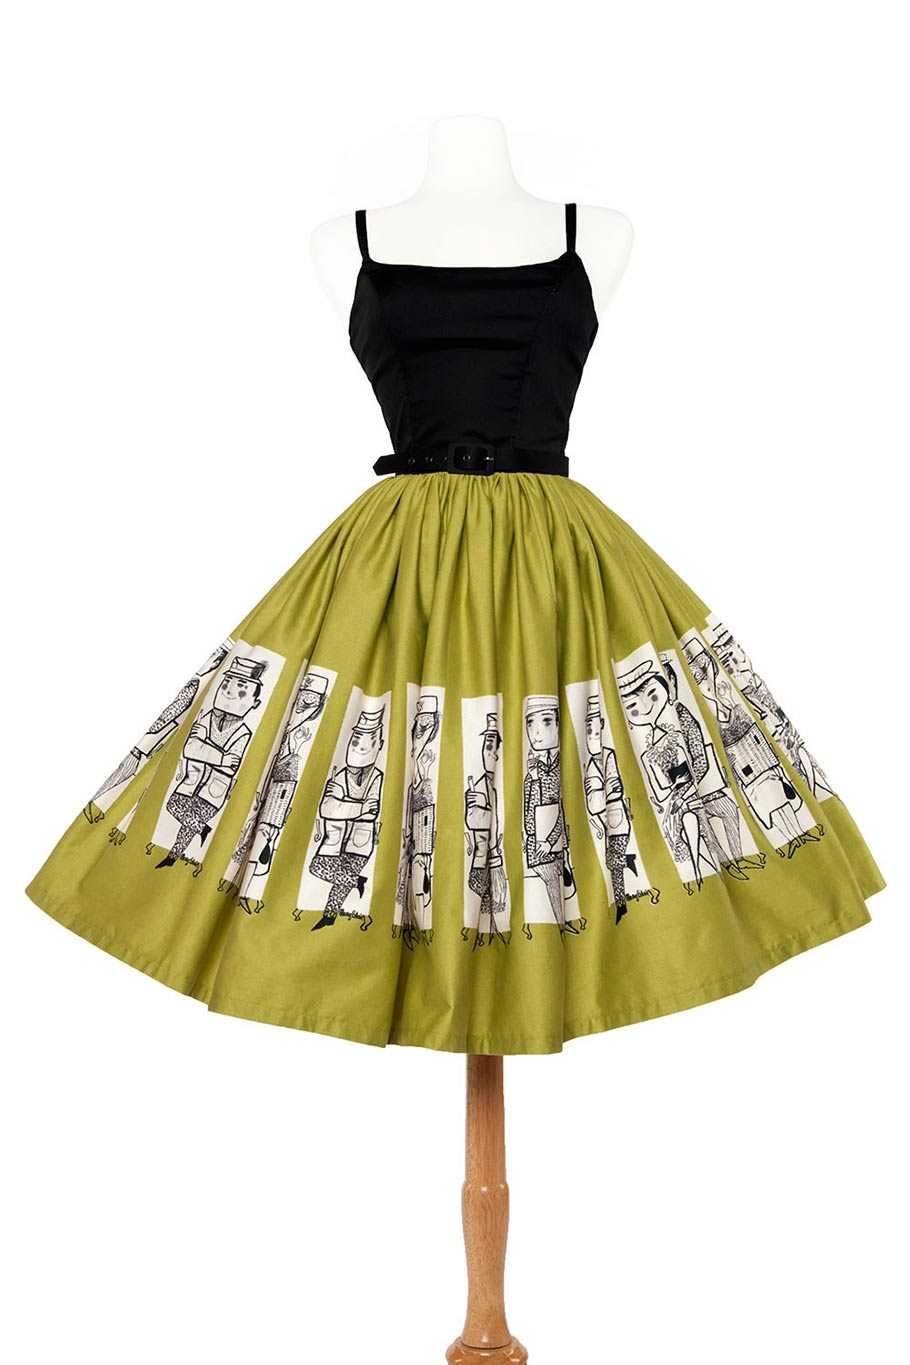 Pinup Girl Clothing Creates Magic of Mary Blair Collection b7803b3dadf